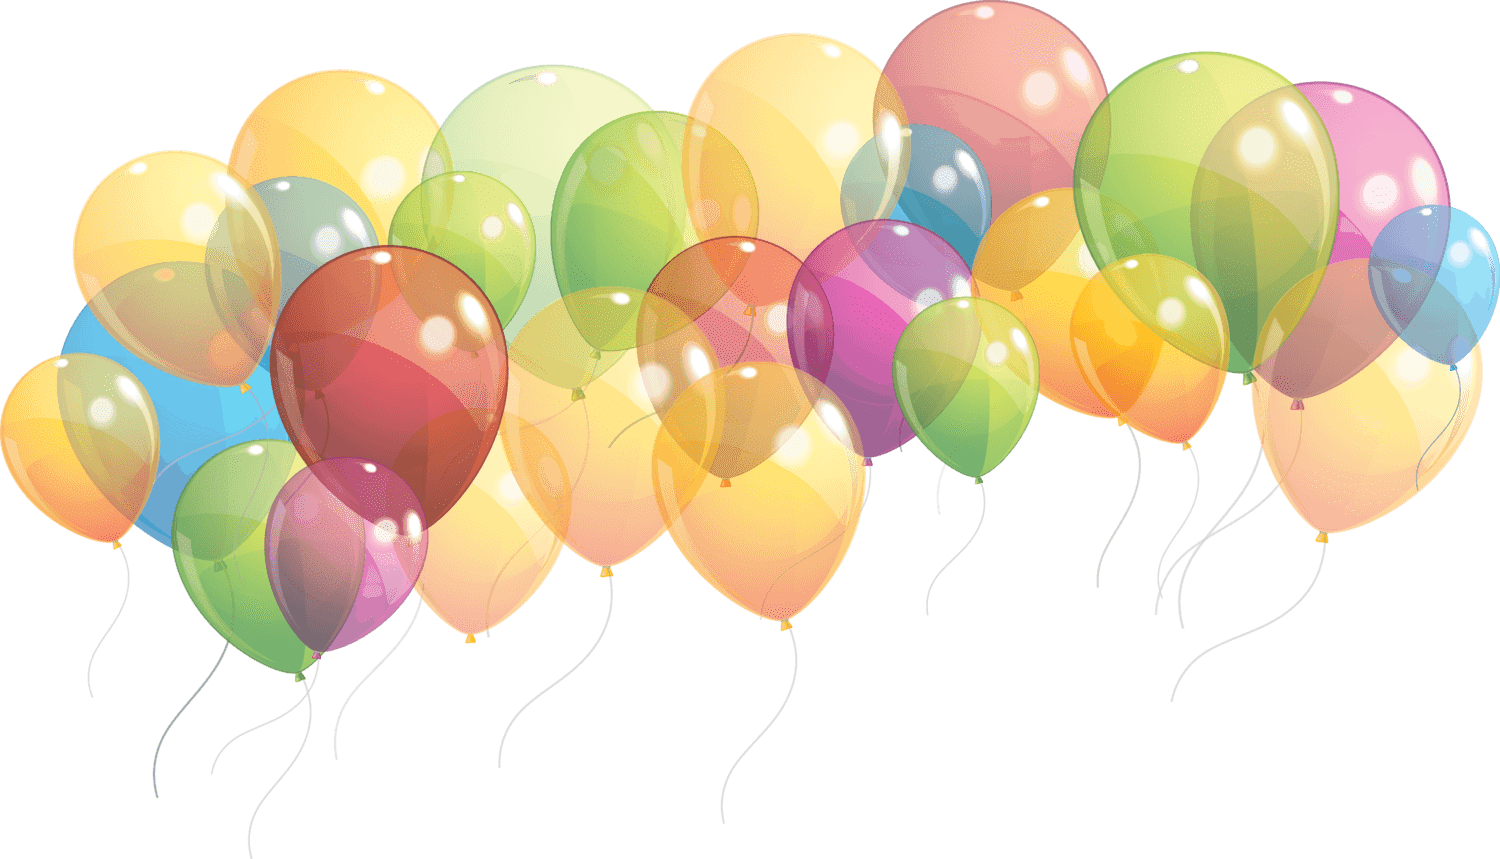 Clipart balloon clear background. Group of balloons taking